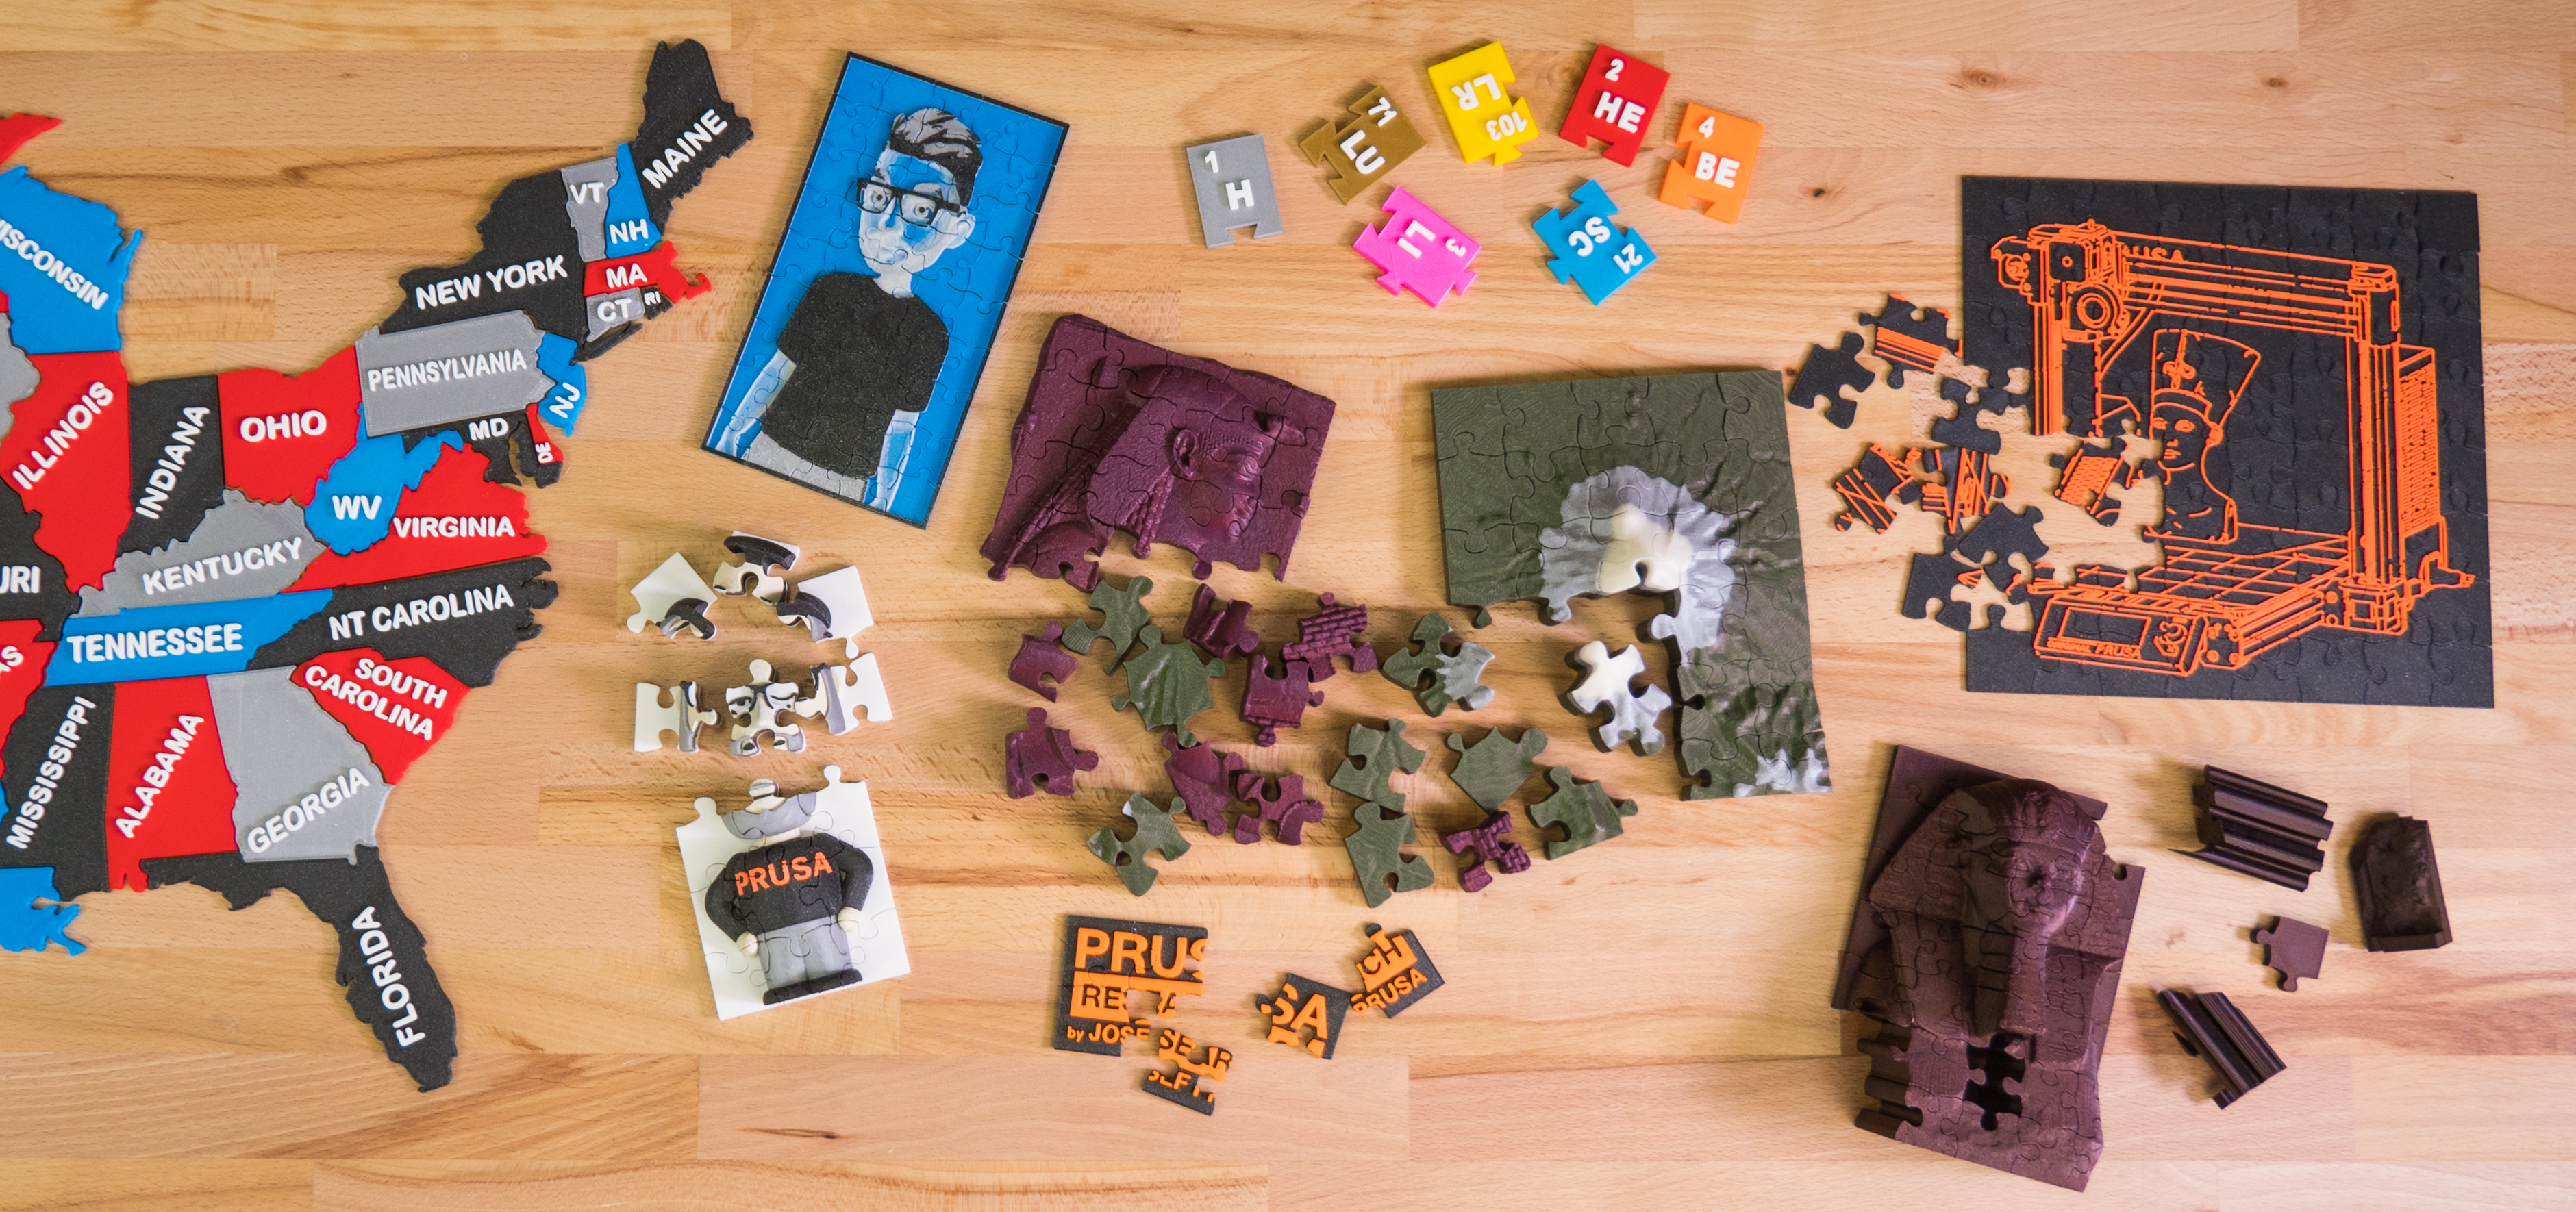 Create And Print Your Own 3D Jigsaw Puzzles! - Prusa Printers - Print On Puzzle